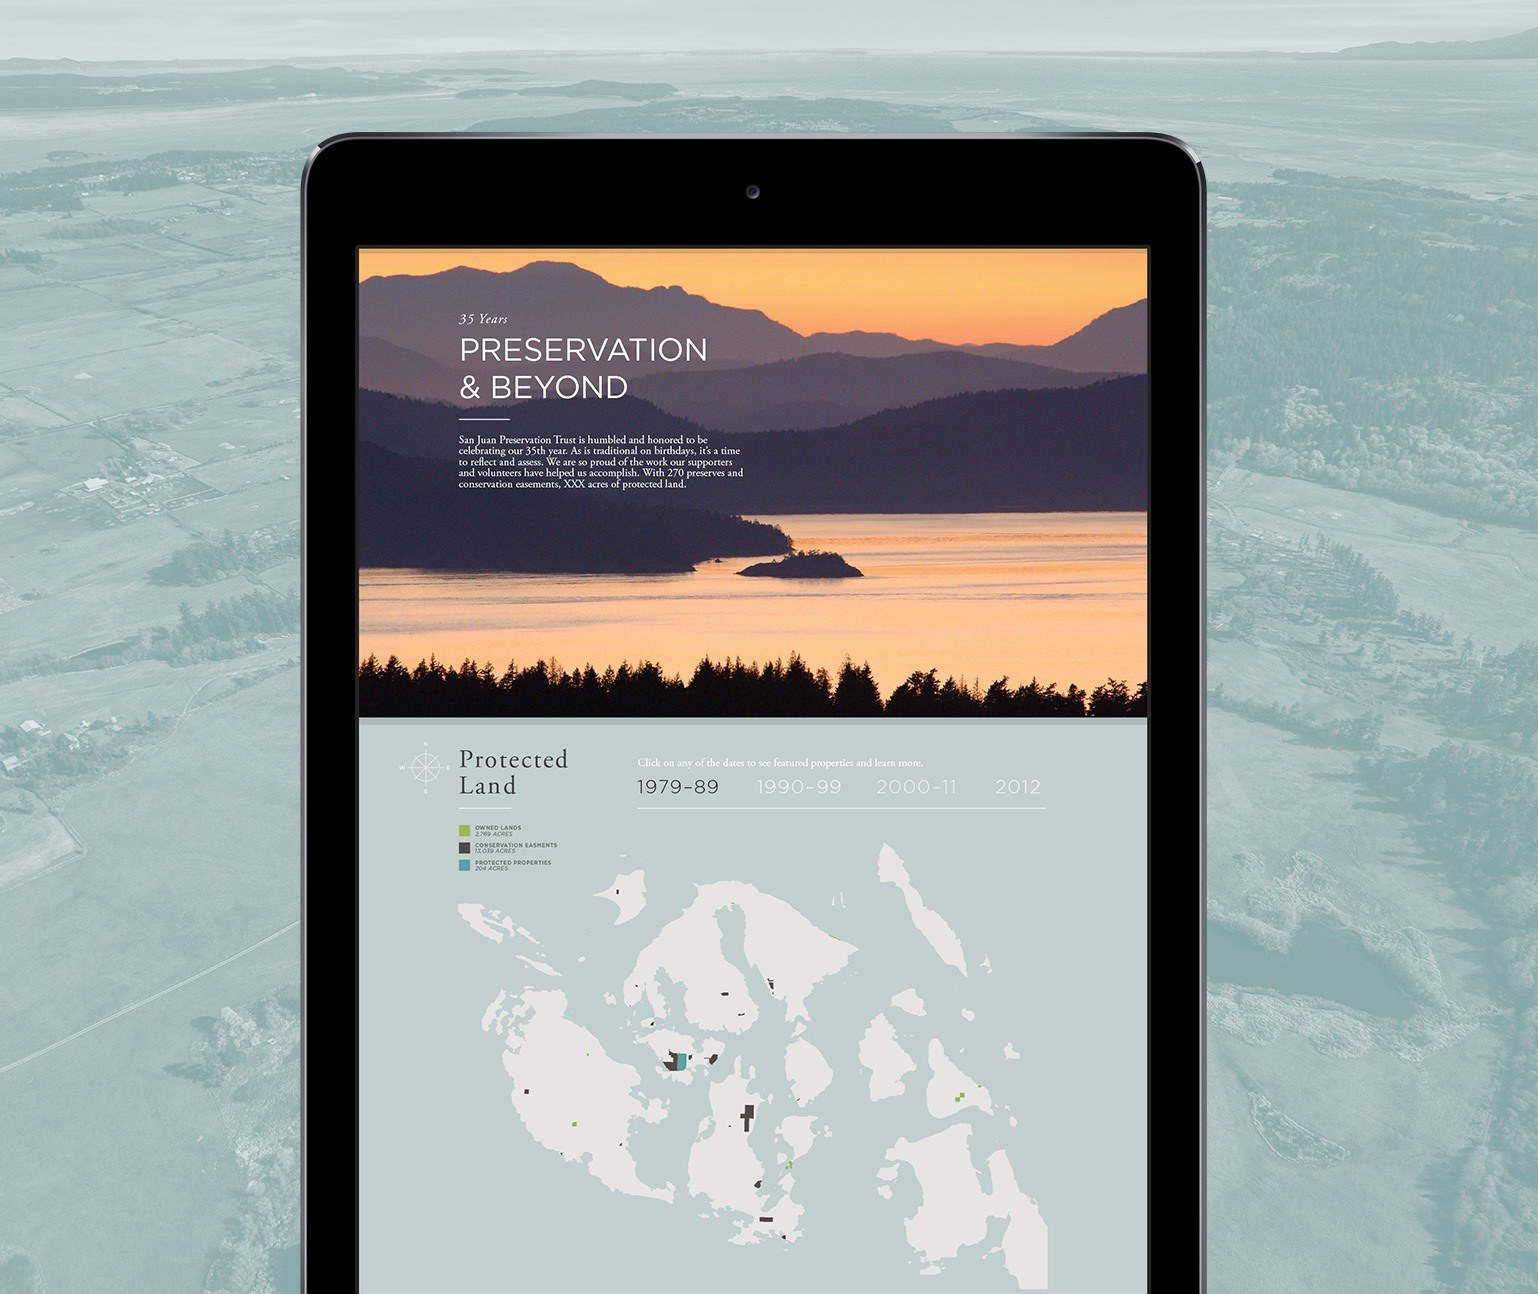 San Juan Preservation Trust website shown on a tablet with a background of an image of the San Juan Islands